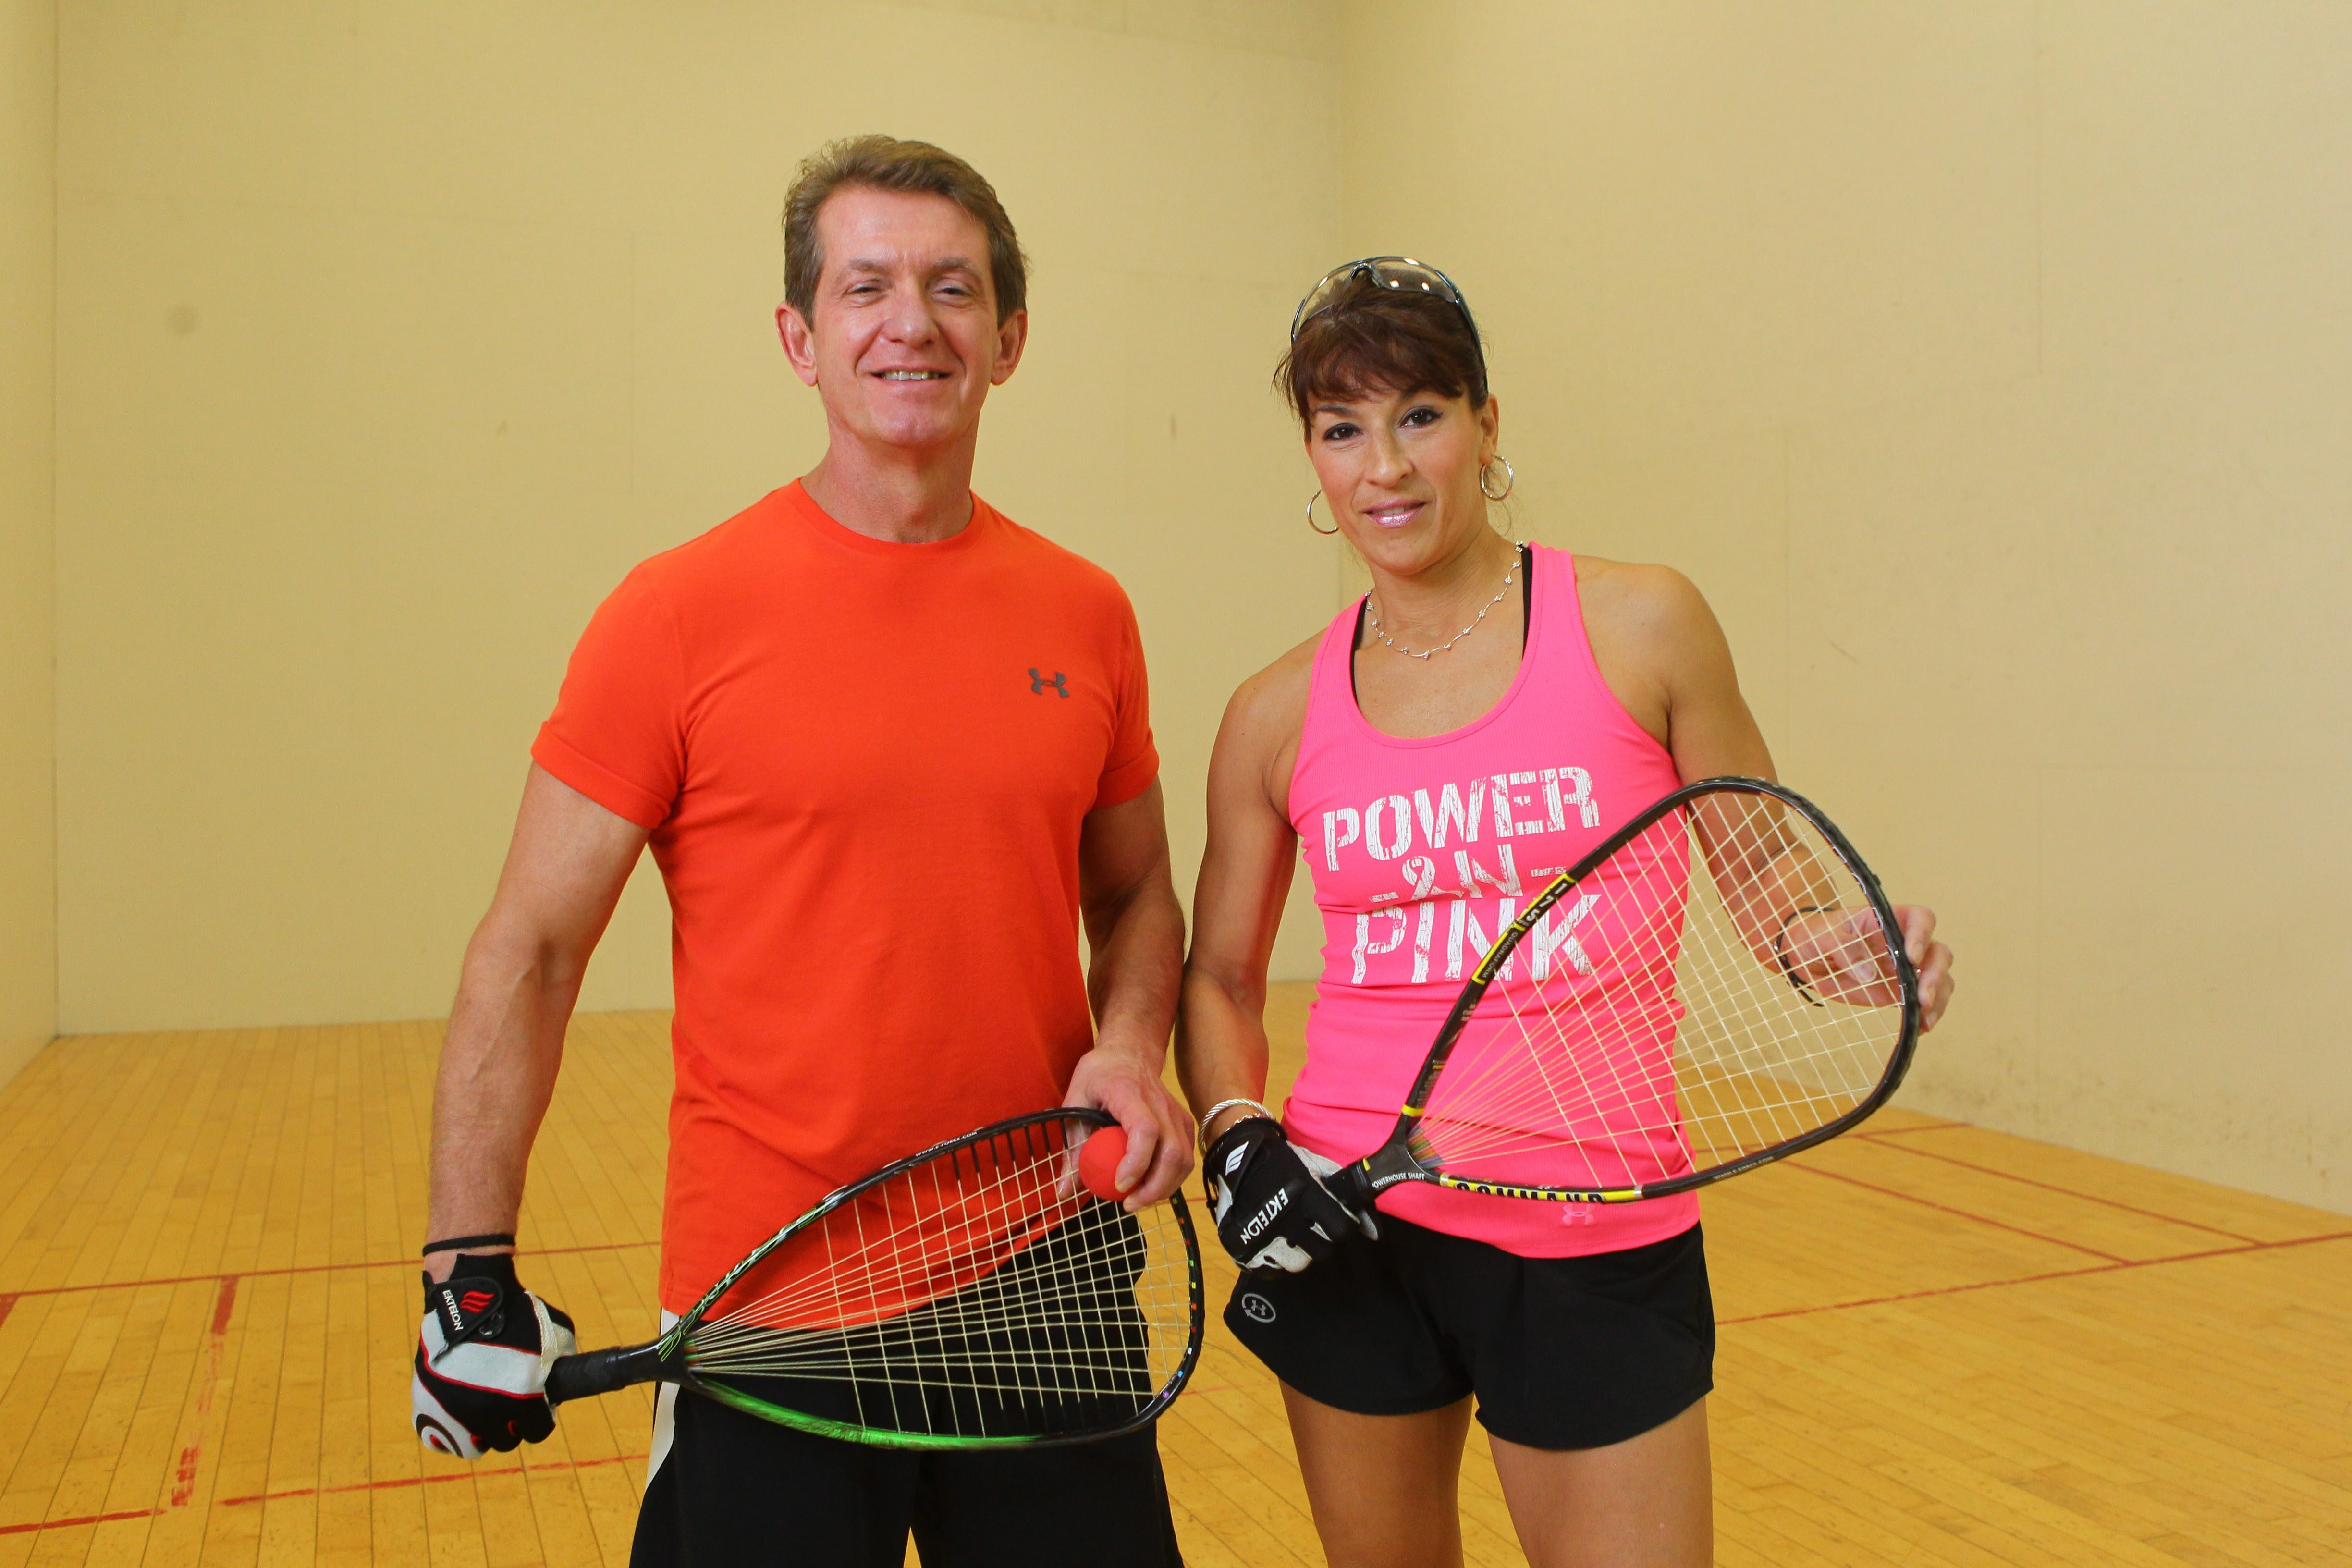 Bob Seiler and Trish Fursman have less company on the racquetball court these days.